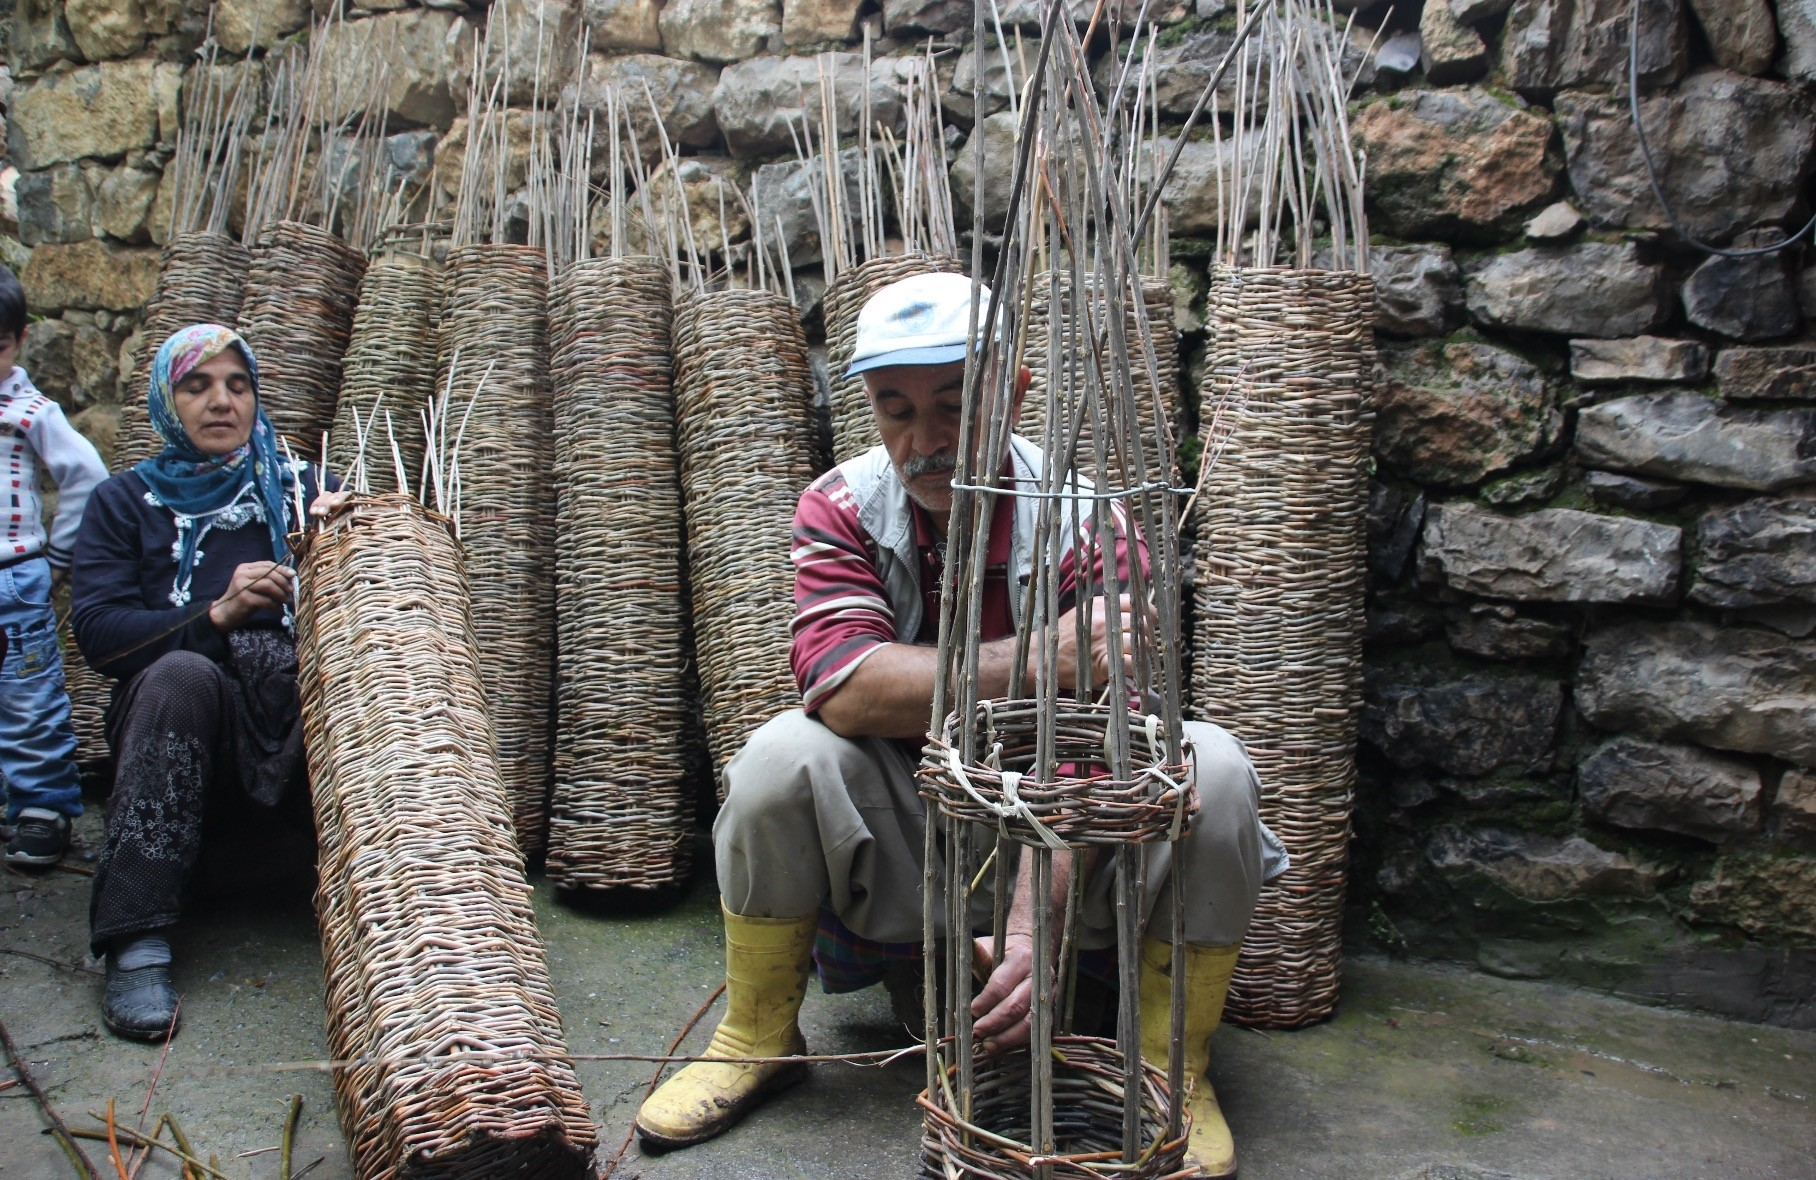 Reu015fit Korkmaz weaves baskets from willow branches.